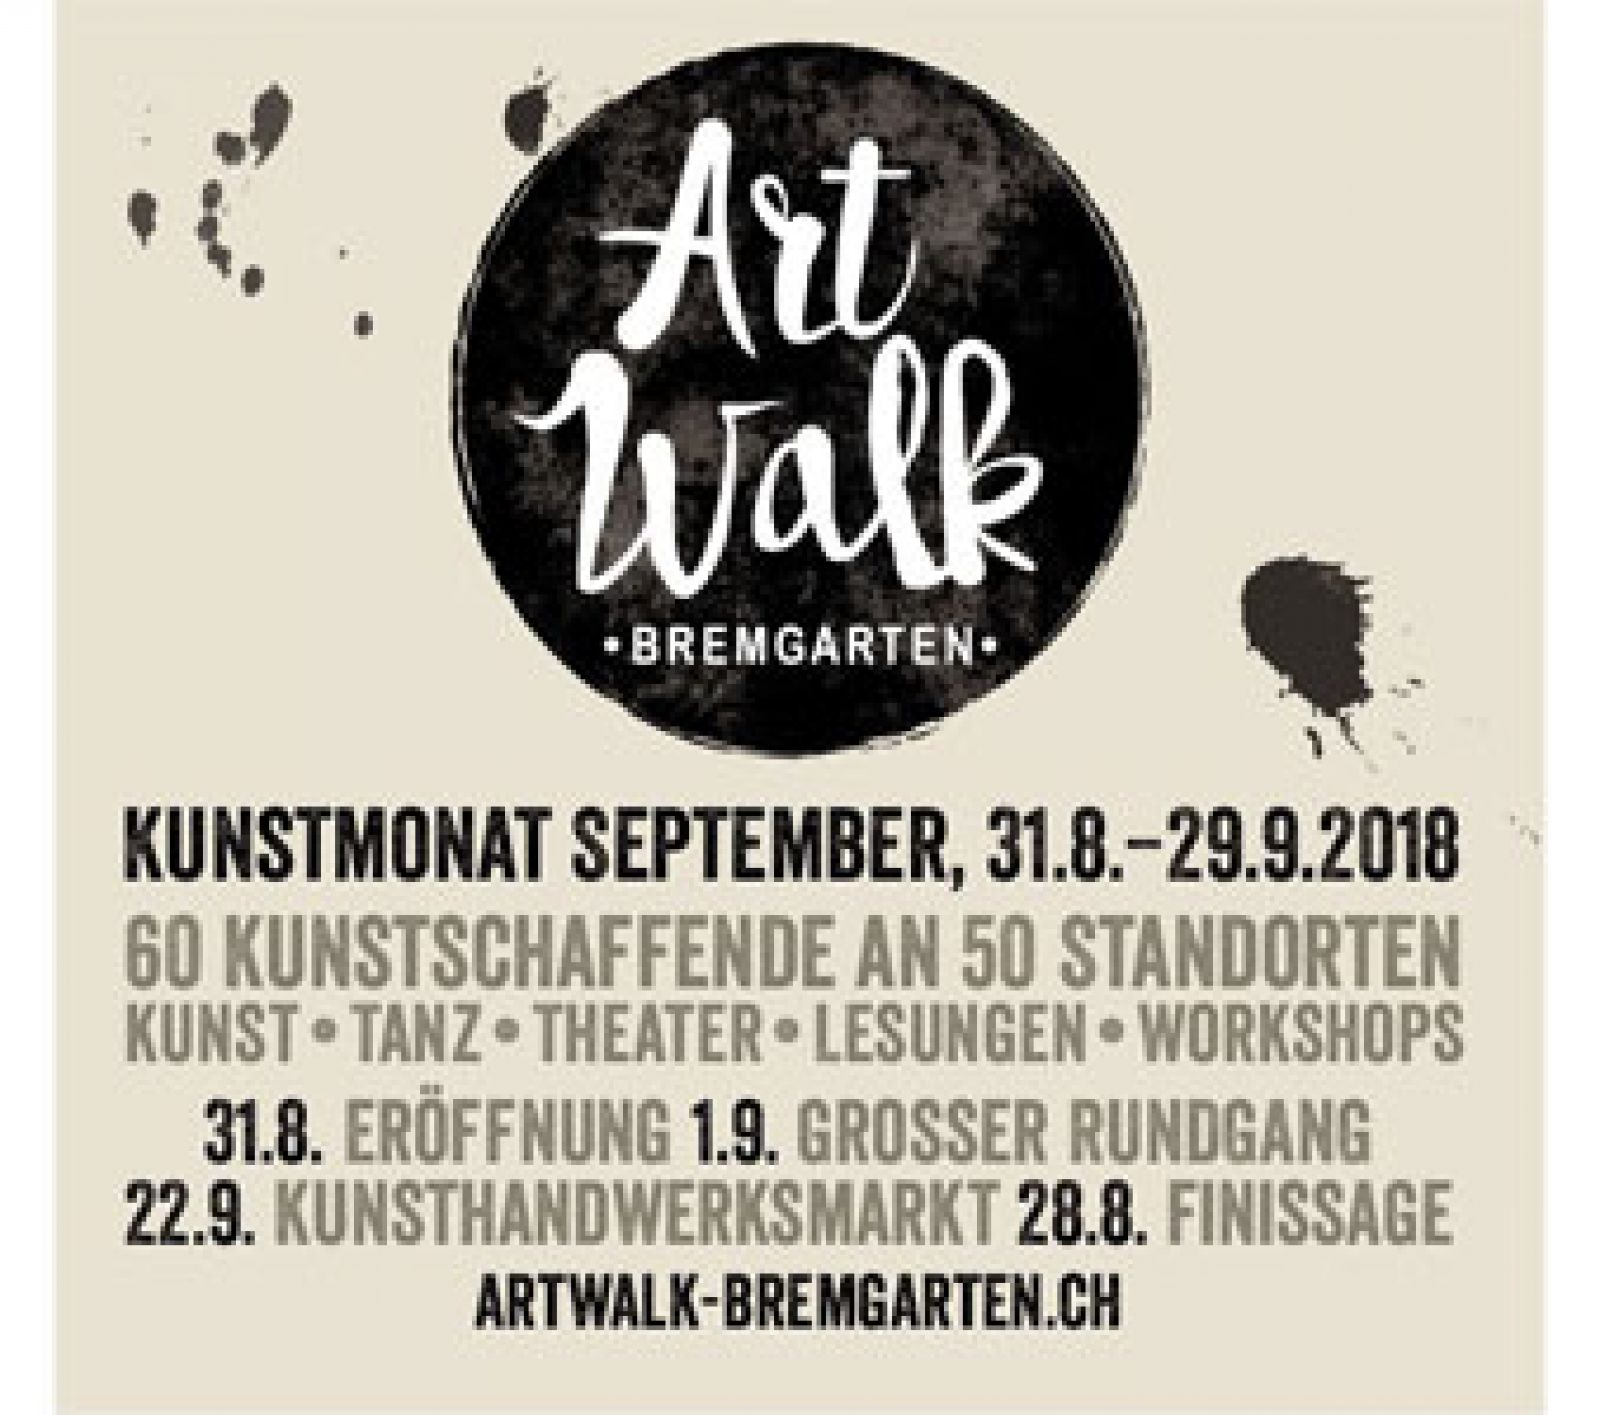 Sponsoren Artwalk Allg